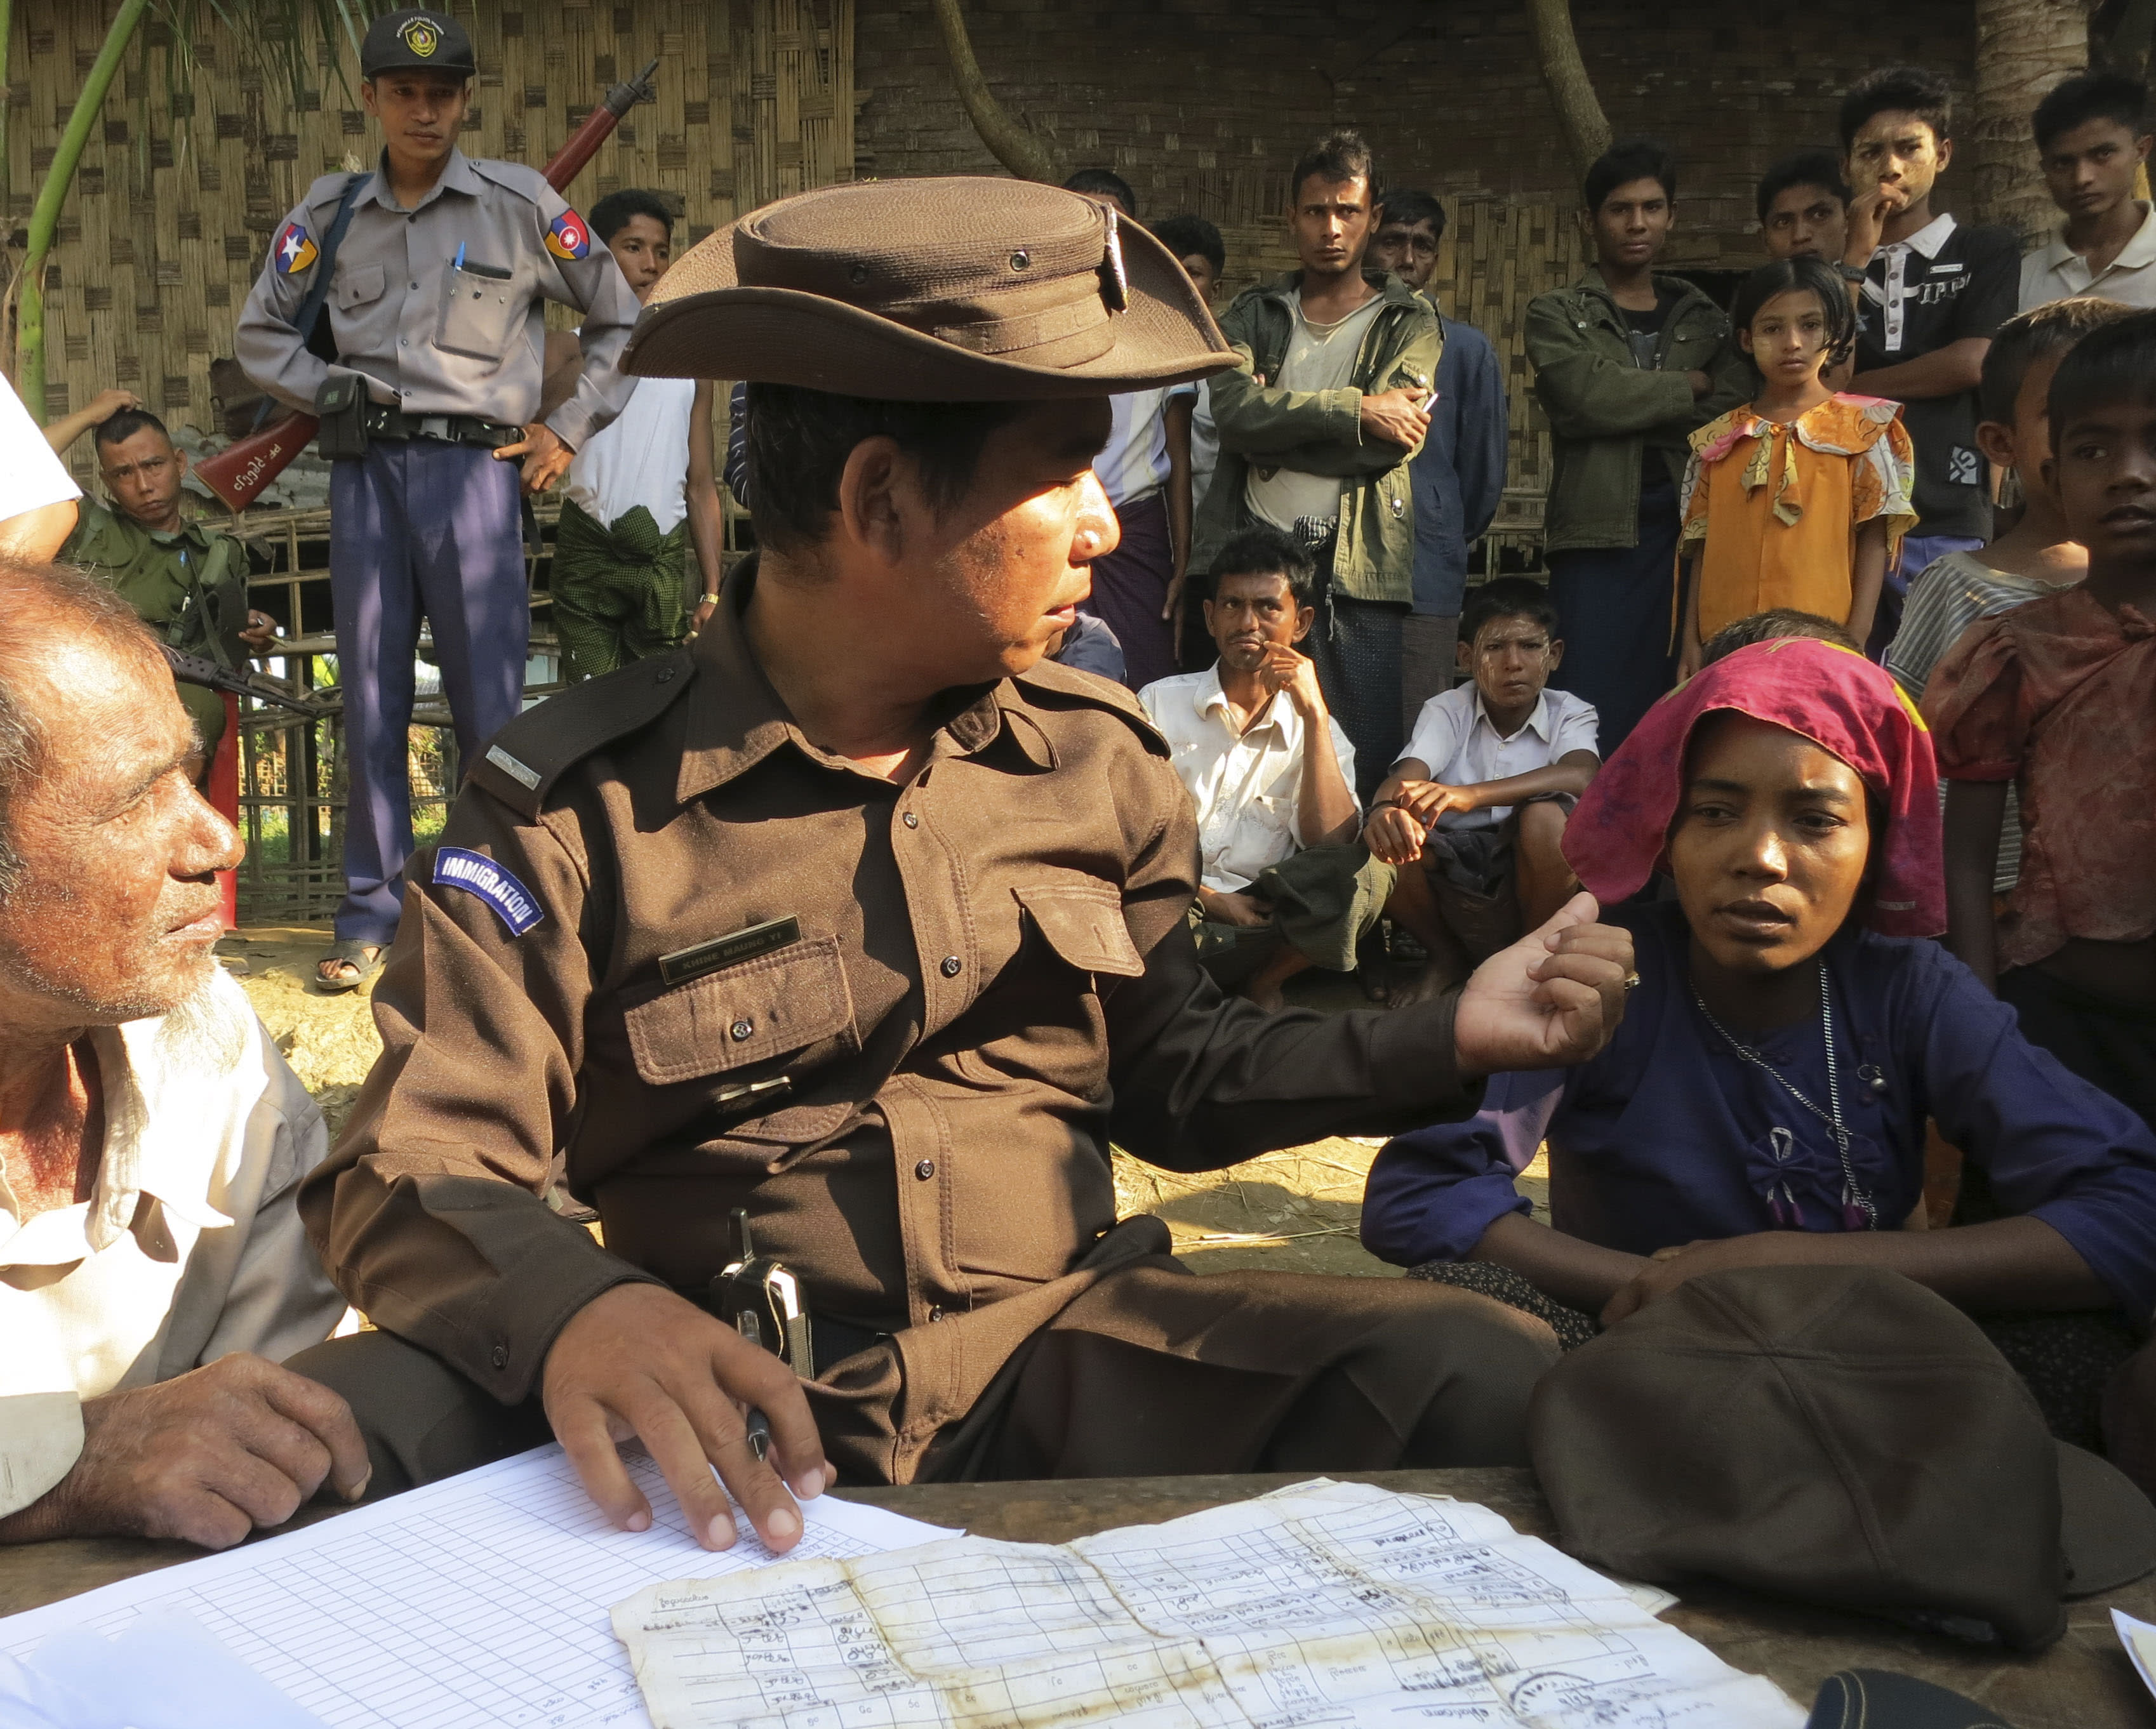 In this Nov. 10, 2012 photo, an immigration officer fills out forms during an operation to verify the citizenship of Muslims living in the western Myanmar village of Sin Thet Maw. The government launched the checks on Nov. 8 after unrest broke out in June between ethnic Rakhine Buddhists and Rohingya Muslims they view as foreigners from Bangladesh. (AP Photo/Todd Pitman)